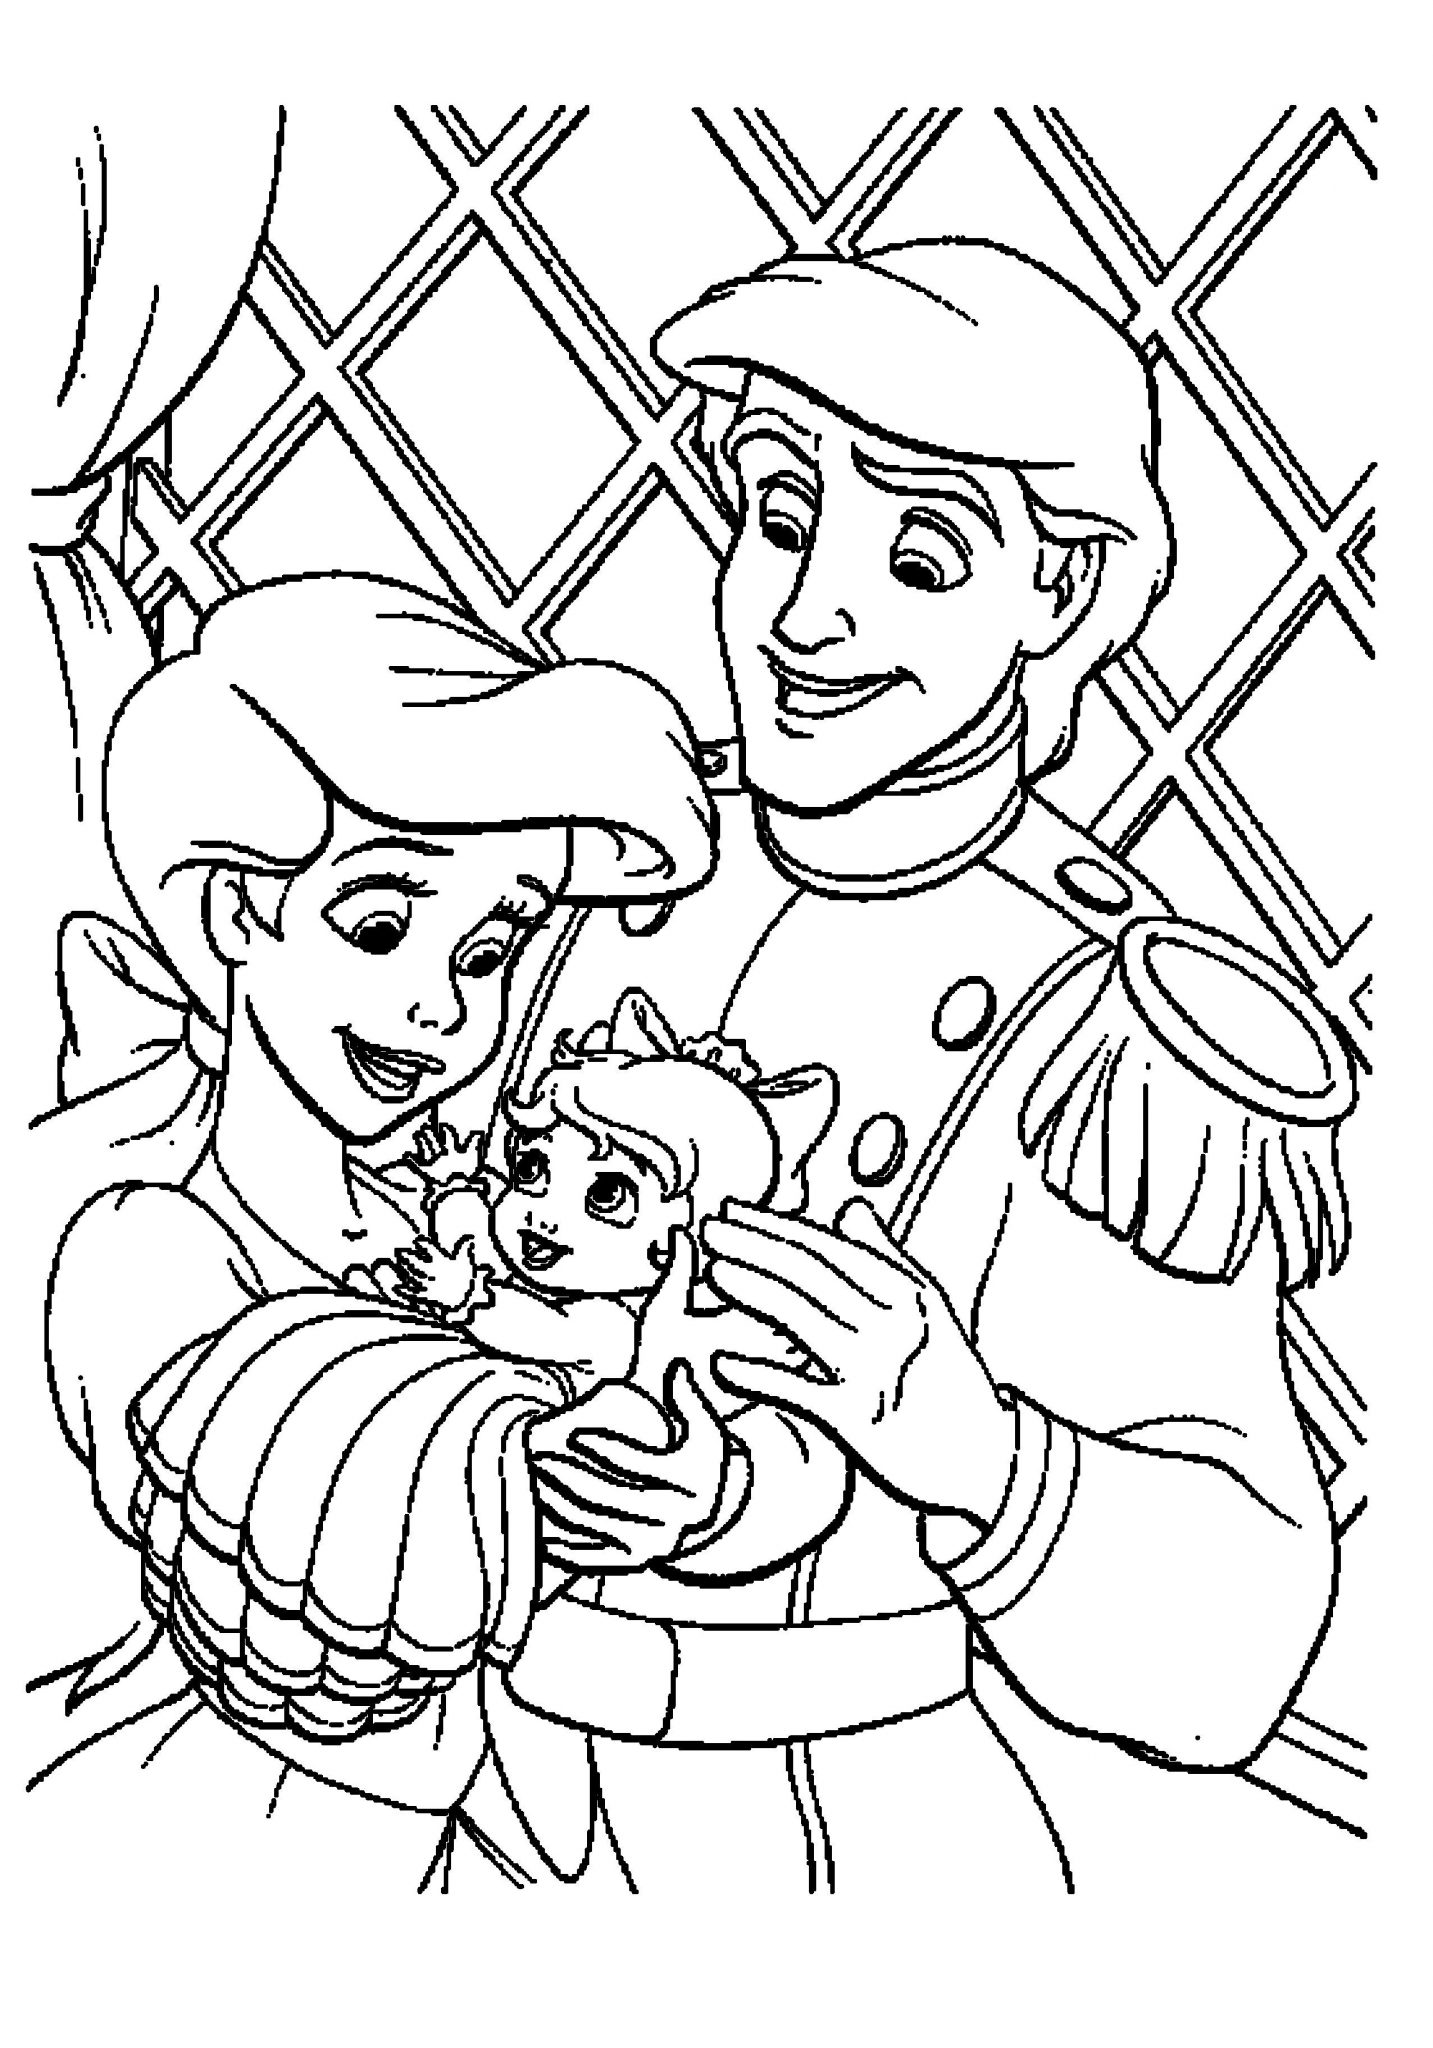 coloring little mermaid the little mermaid coloring pages print and colorcom little mermaid coloring